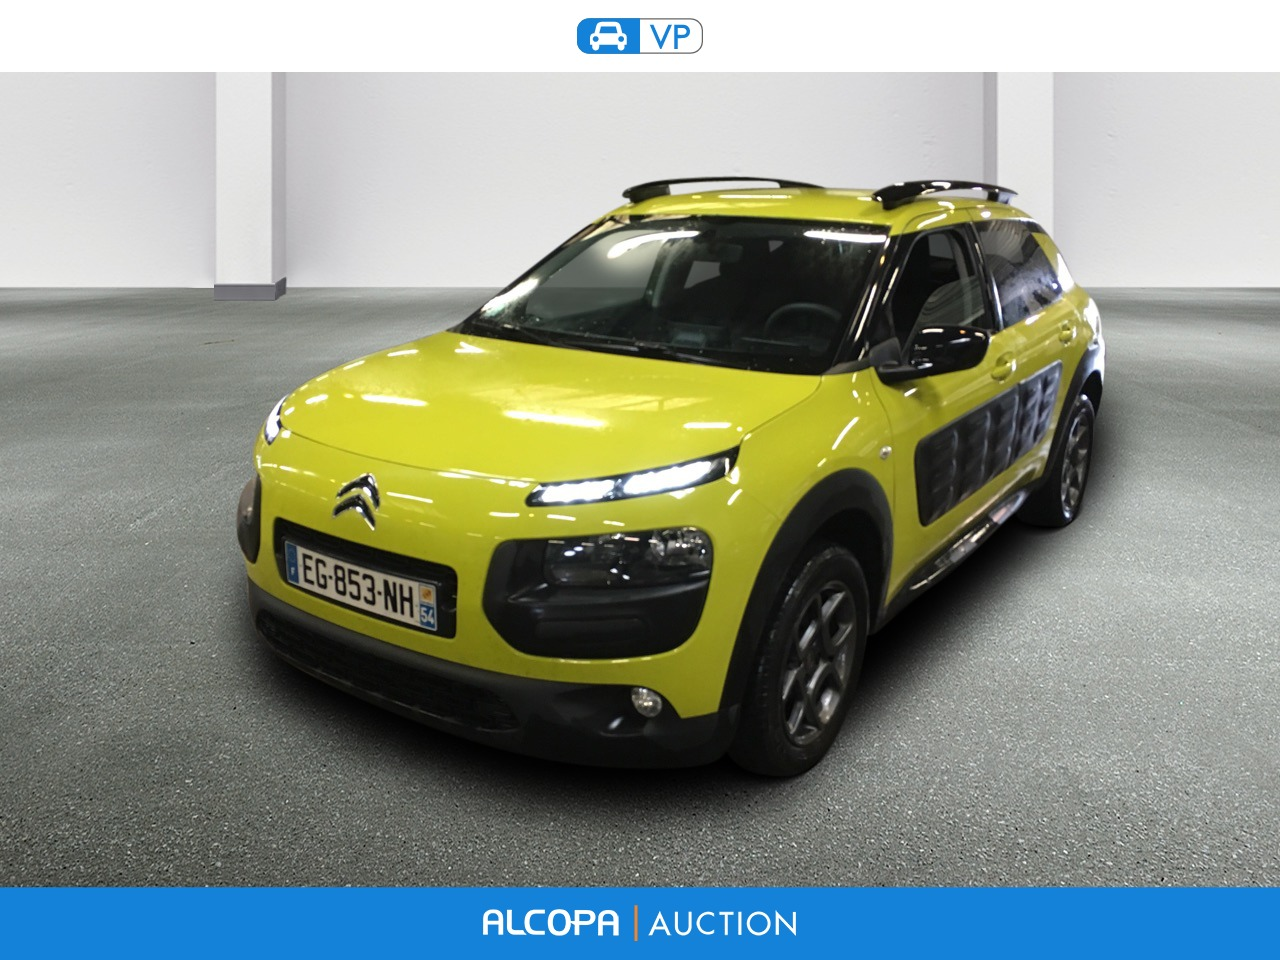 citroen c4 cactus 03 2014 12 2017 c4 cactus bluehdi 100 feel edition alcopa auction. Black Bedroom Furniture Sets. Home Design Ideas